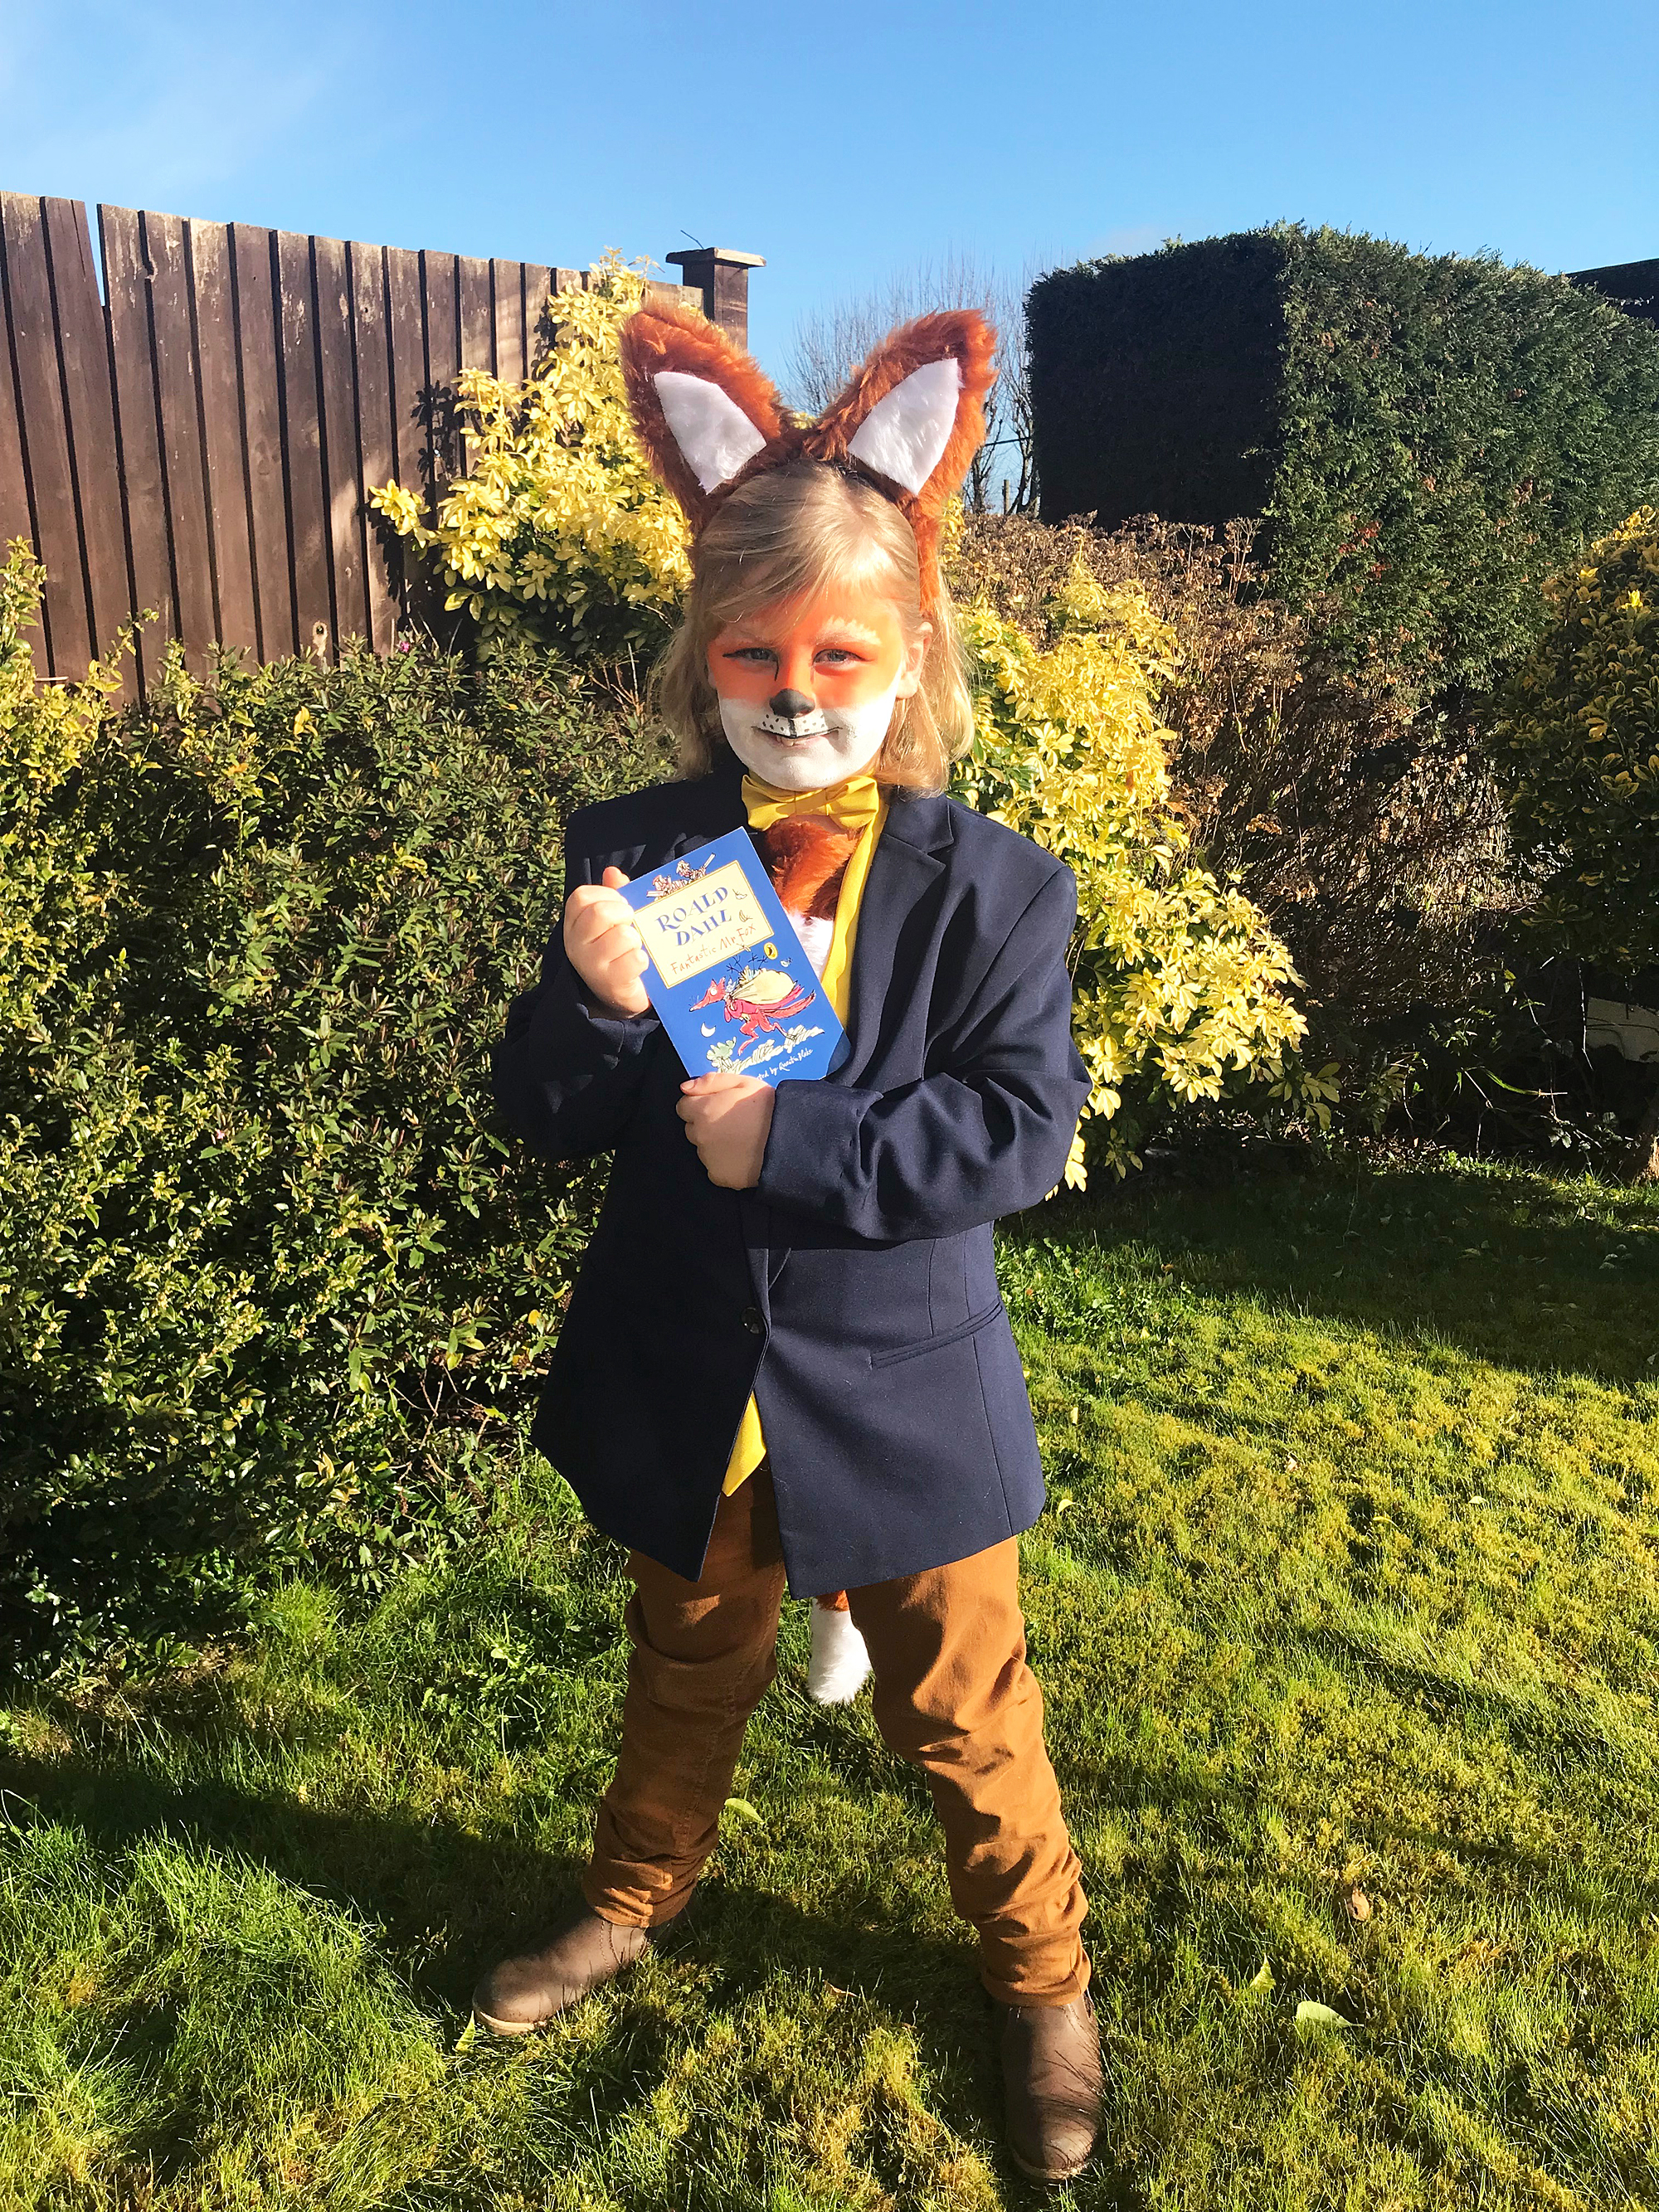 Jacob dressed as Roald Dahl's Fantastic Mr Fox for World Book Day